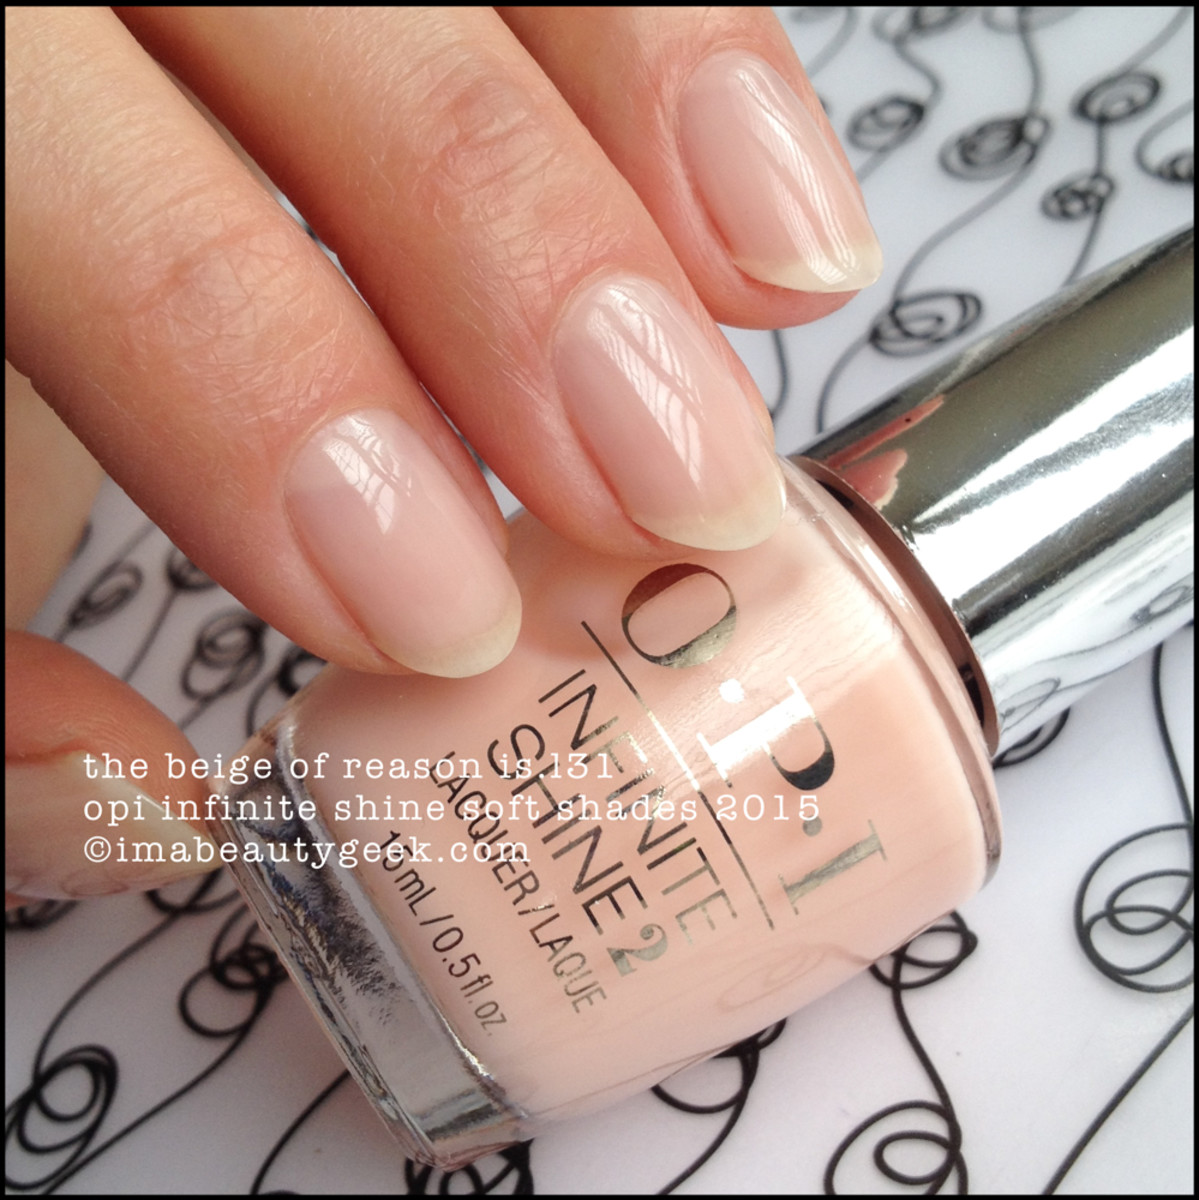 OPI Infinite Shine The Beige of Reason OPI IS Soft Shades 2015